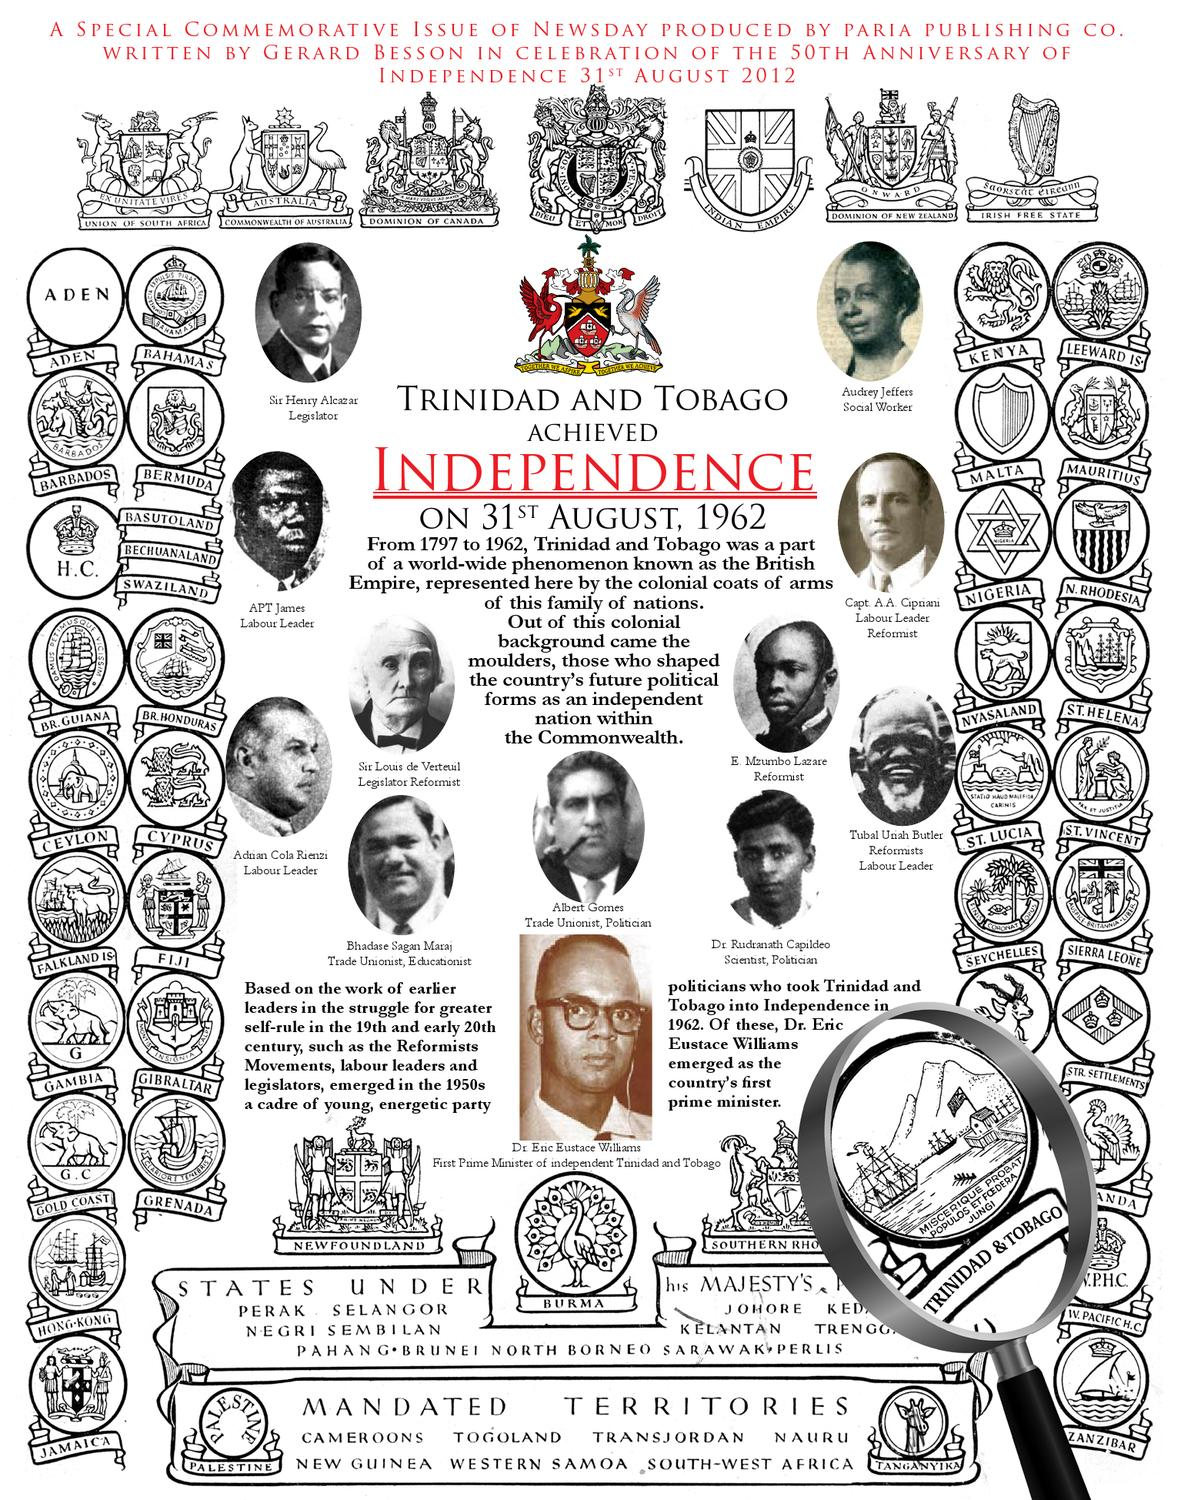 a history of trinidad and tobagos independence 6 shares independence day in trinidad and tobago is celebrated on august 31 each year the day commemorates the day in 1962 when trinidad and tobago proclaimed independence from britain.